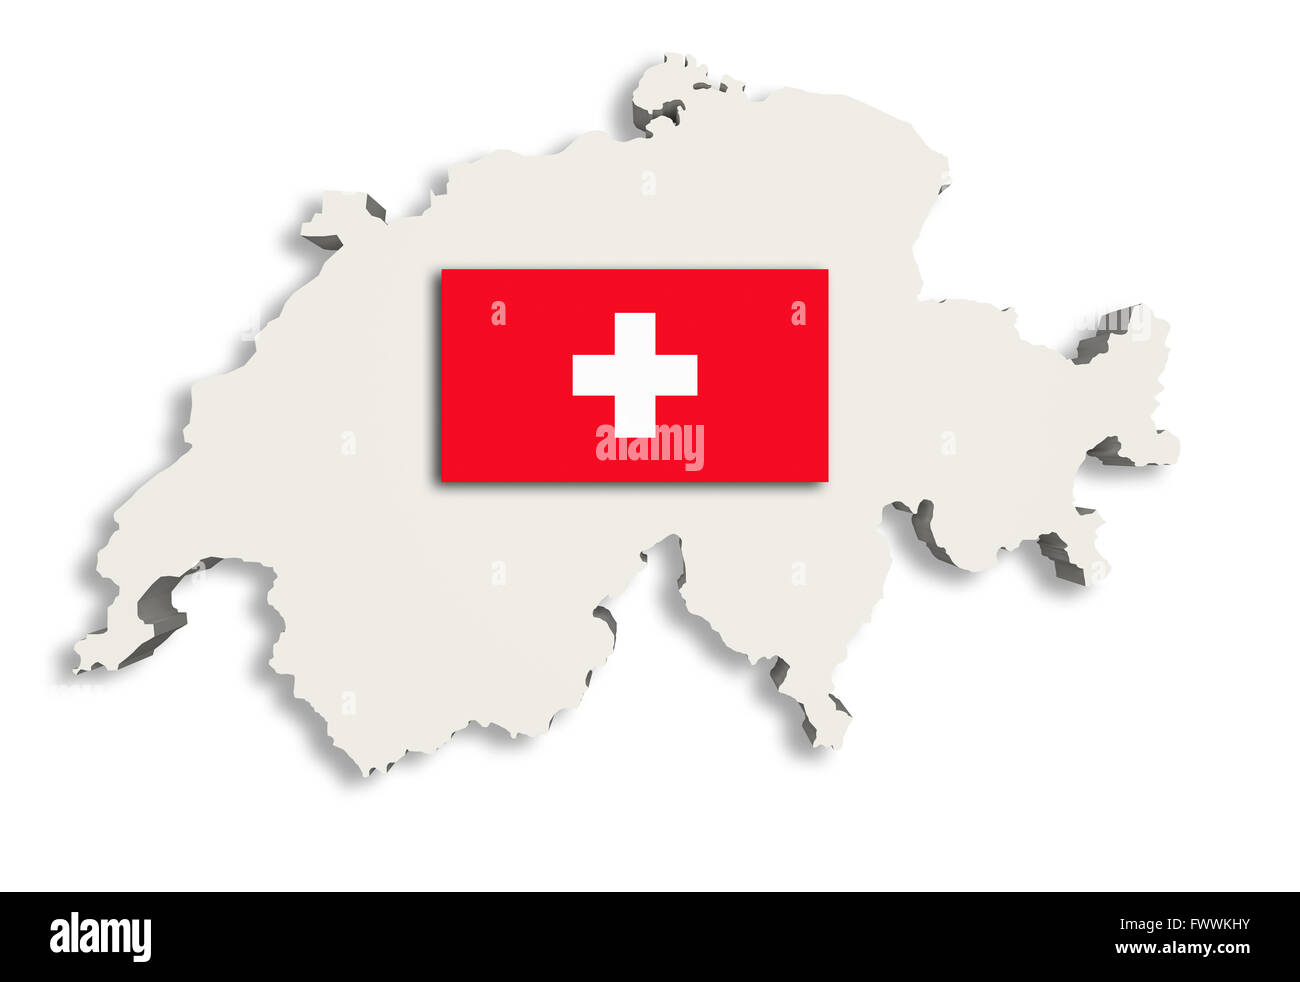 3d rendering of Switzerland map and a flag on the background - Stock Image